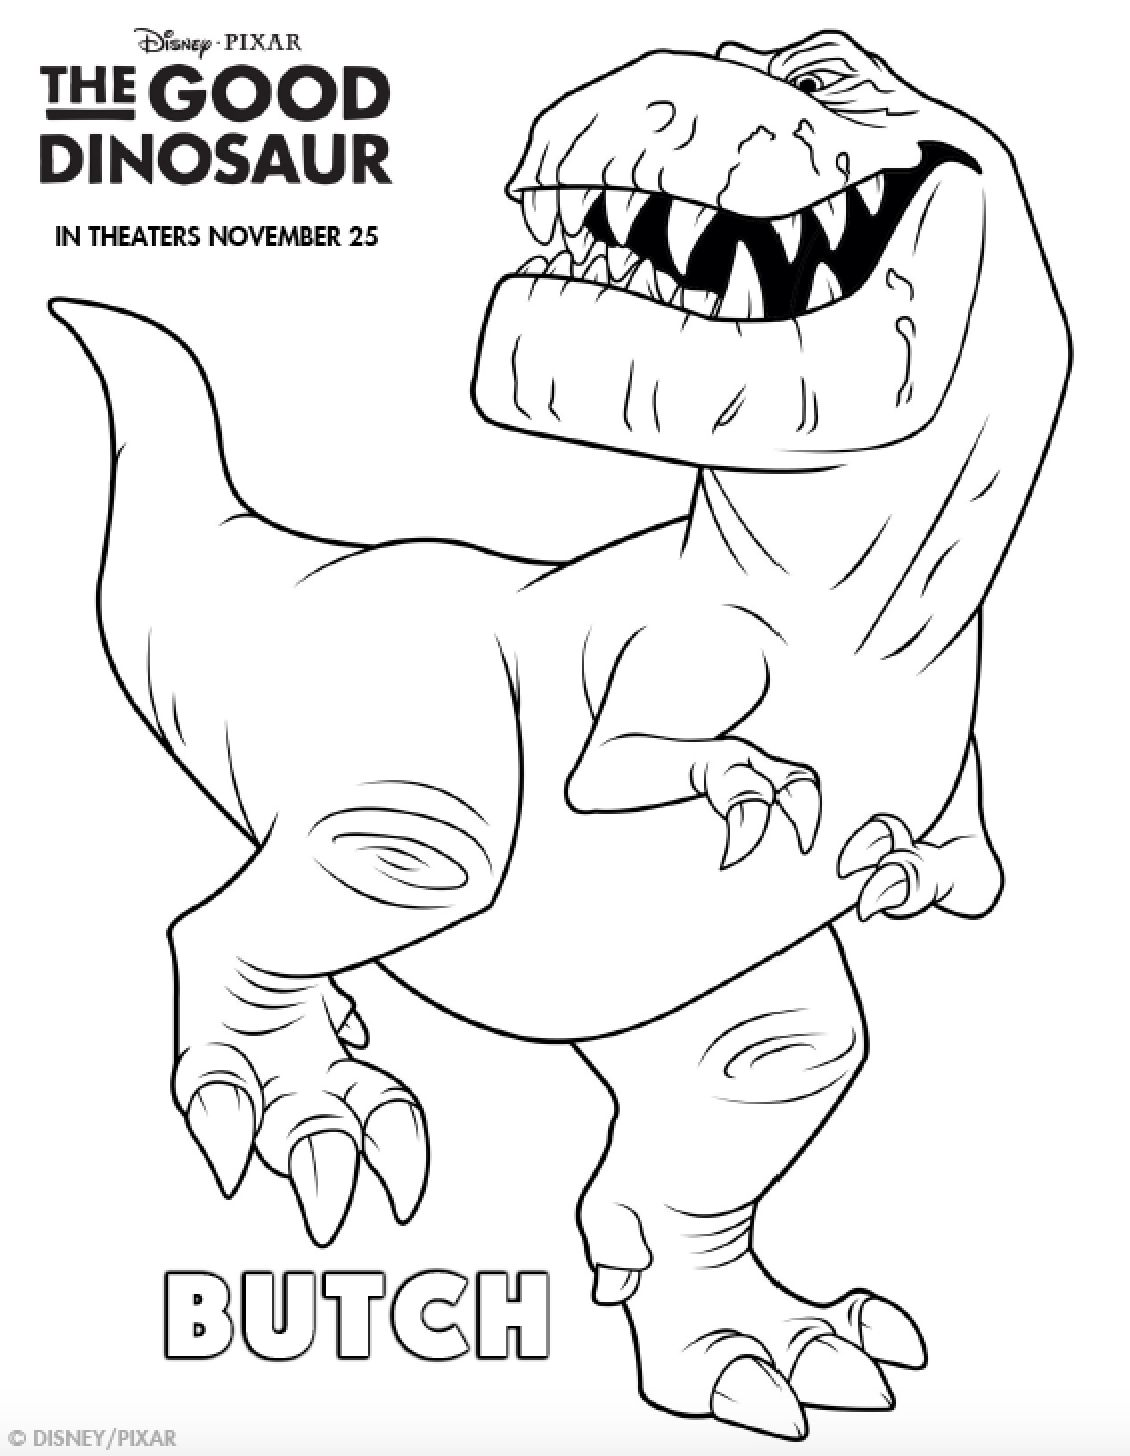 Adult Beauty Printable Coloring Pages Dinosaurs Images top dinosaur printable coloring pages triceratops the good 1000 gallery images